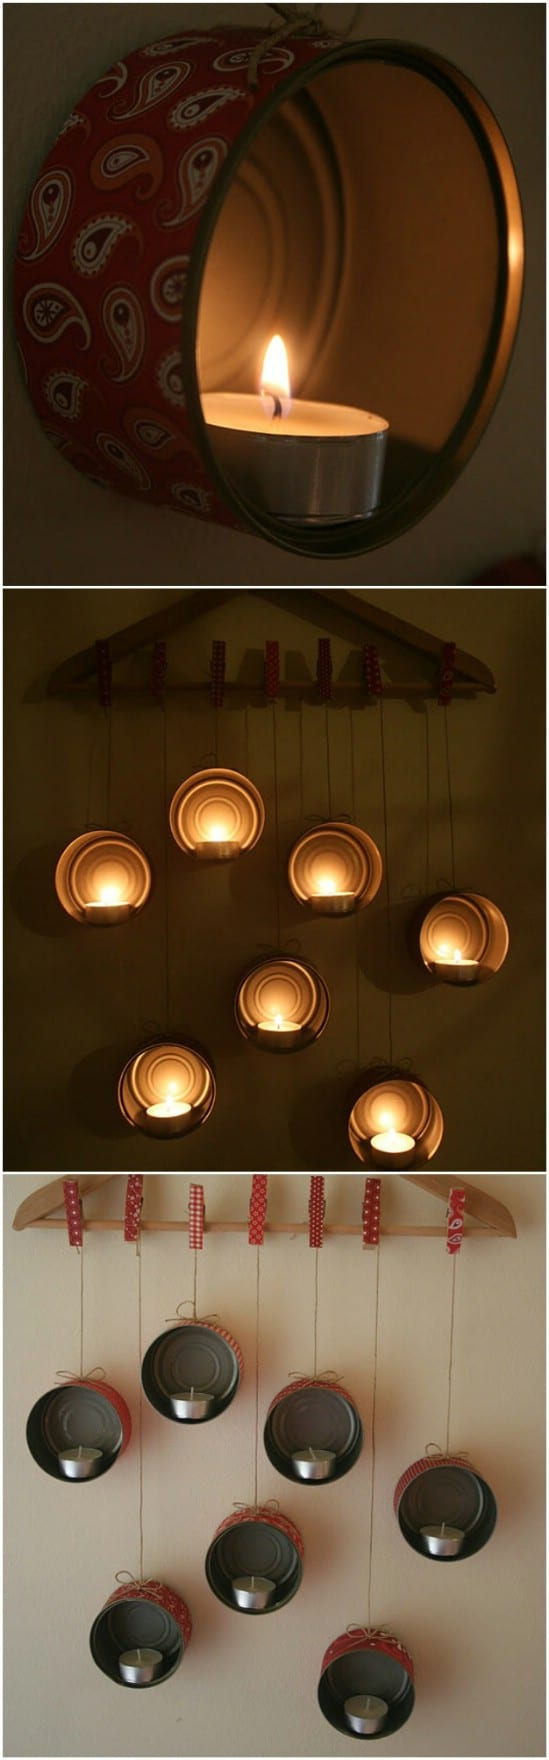 Tealight Holders - 20 Frugally Genius Ways To Upcycle Empty Tuna Cans